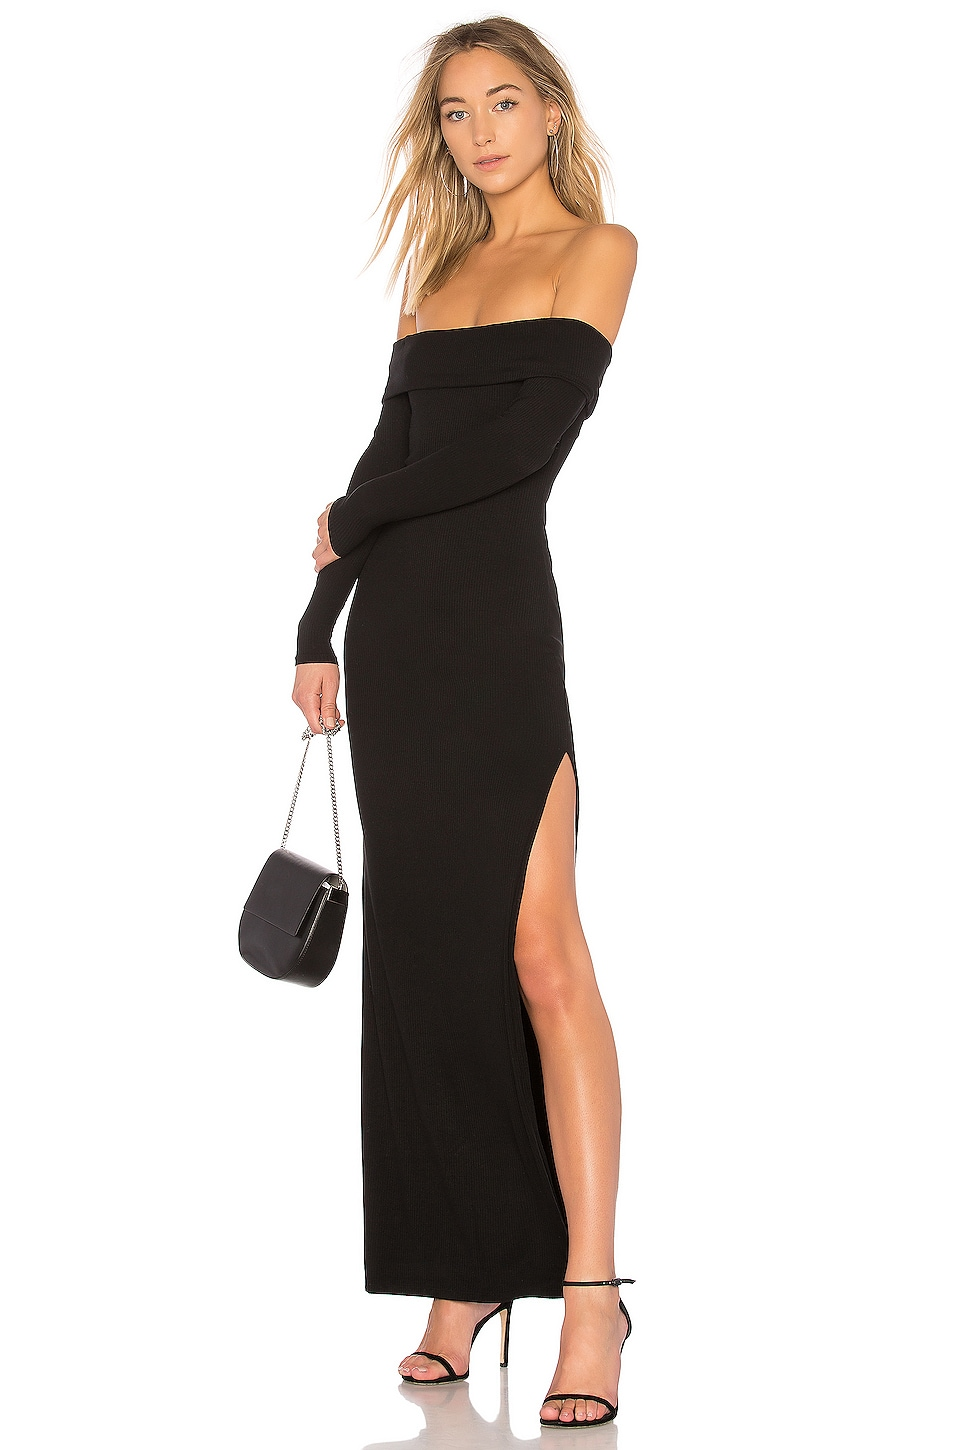 Privacy Please Royale Dress in Black